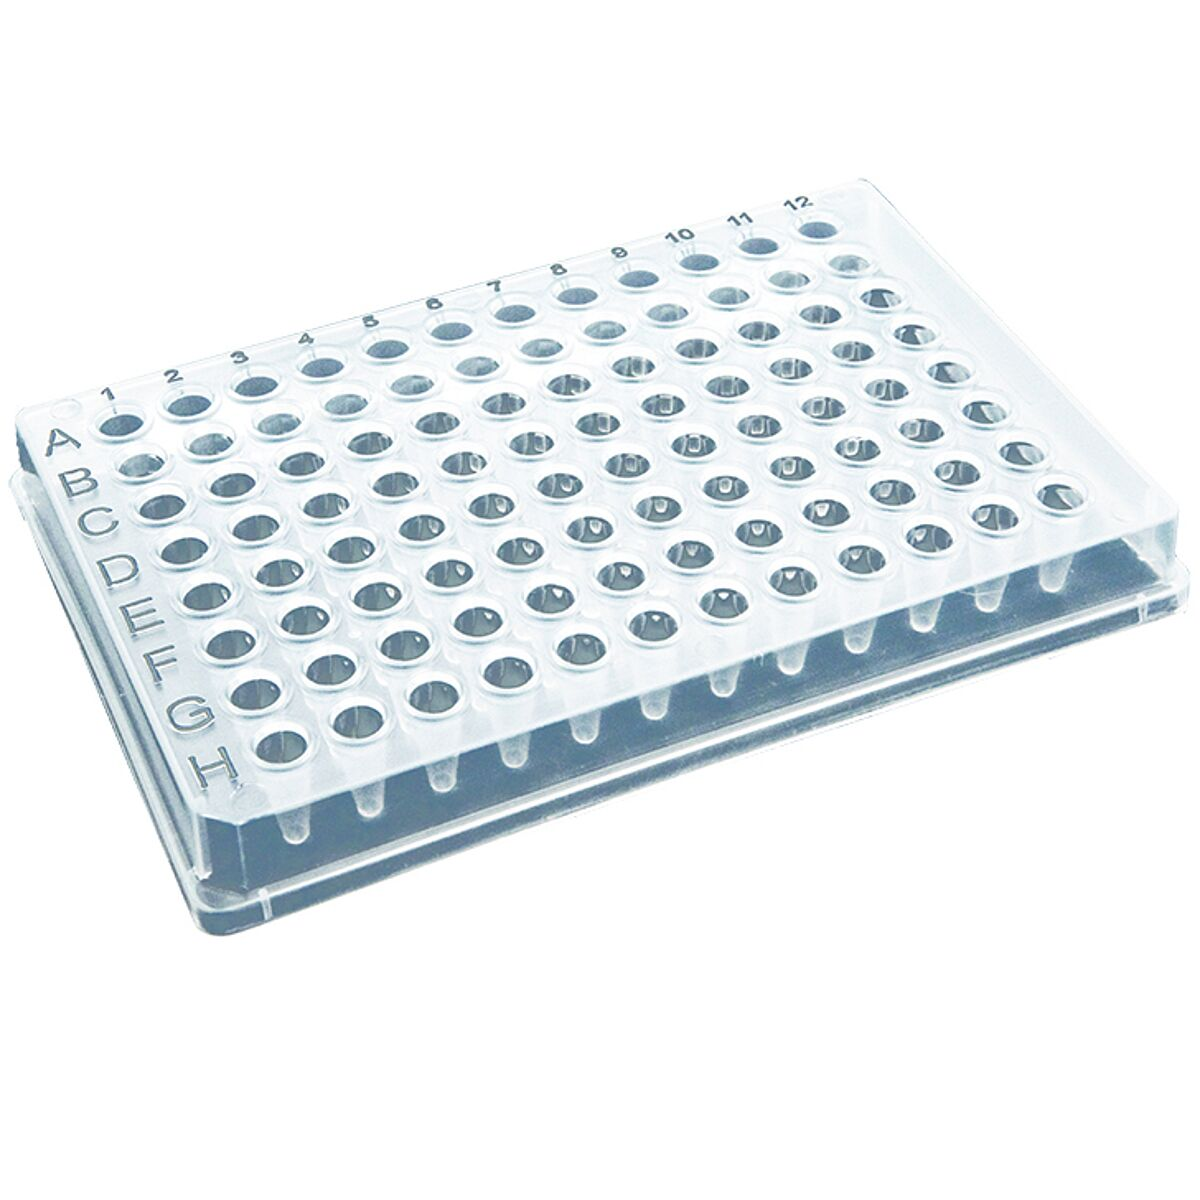 Nippon FastGene 0.2ml full-skirted PCR plate photo